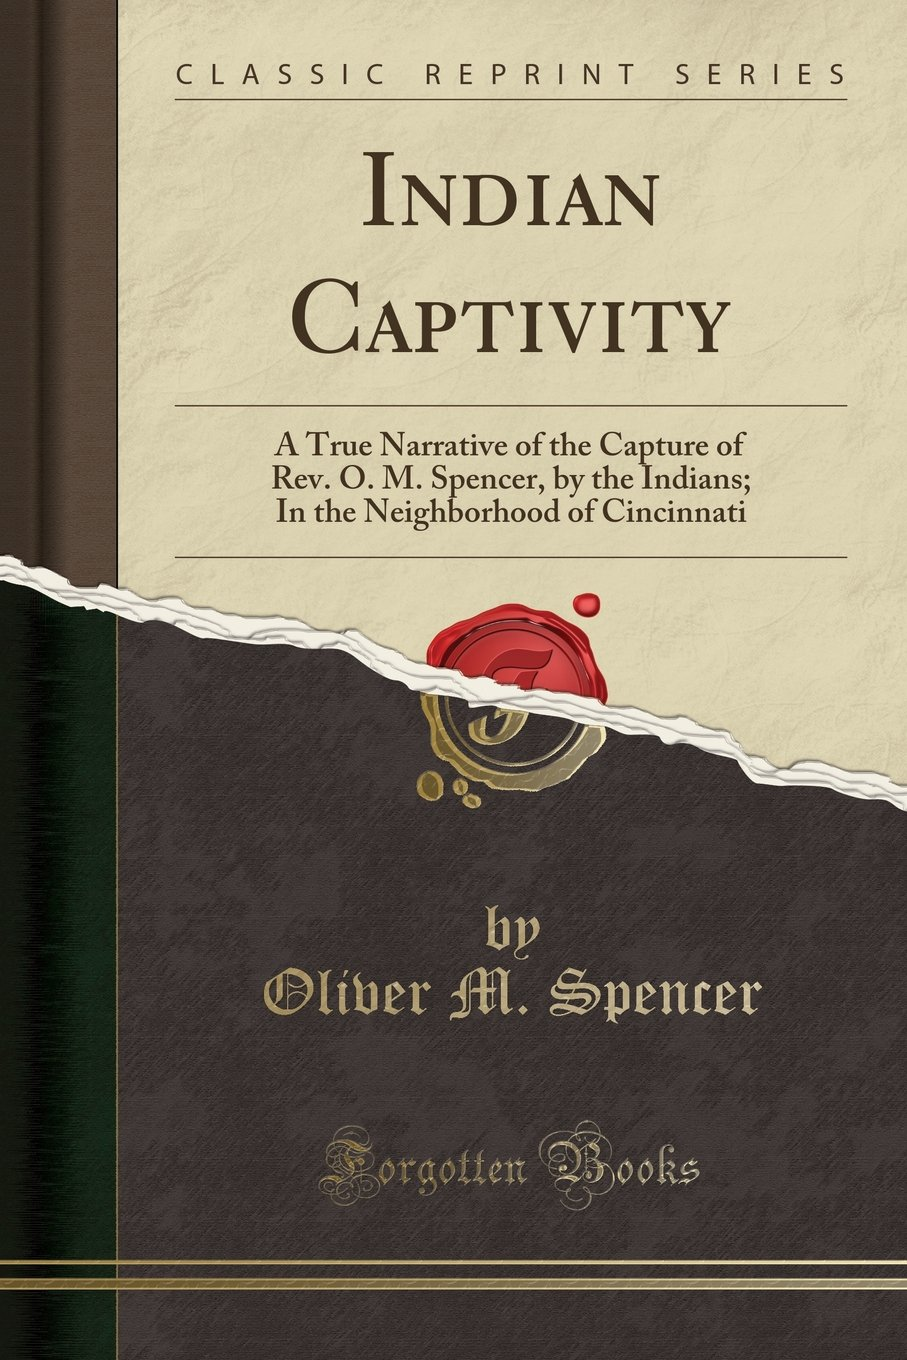 Indian Captivity: A True Narrative of the Capture of Rev. O. M. Spencer, by the Indians; In the Neighborhood of Cincinnati (Classic Reprint) pdf